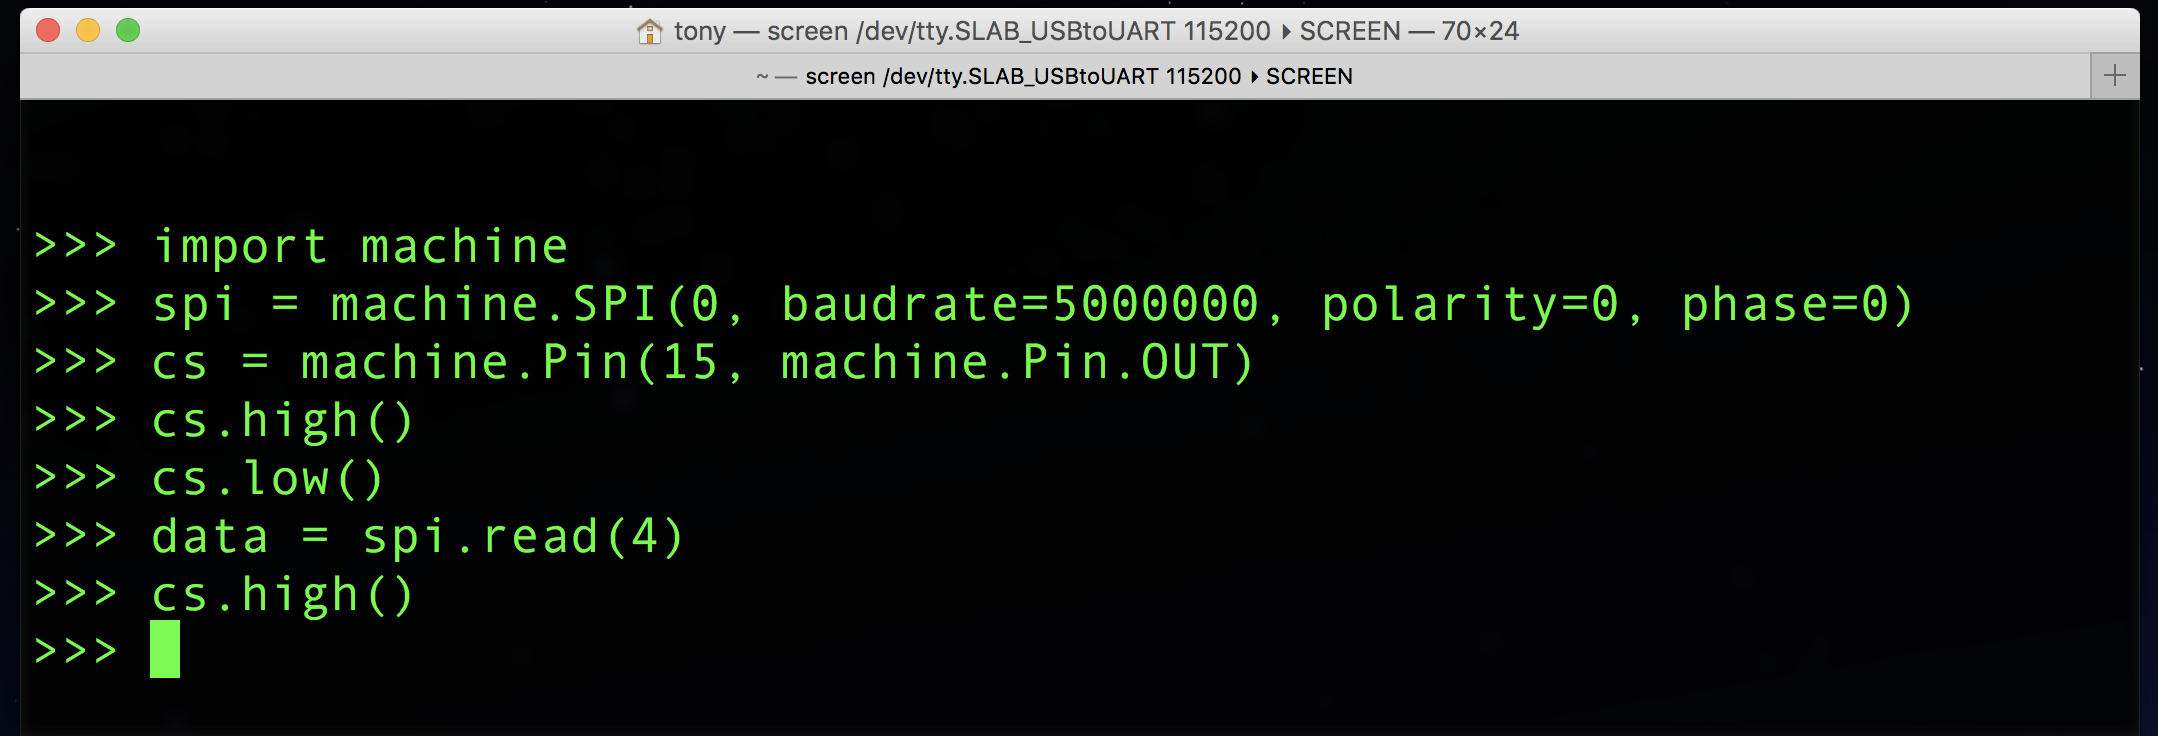 microcontrollers_Screen_Shot_2016-09-07_at_10.56.19_PM.png